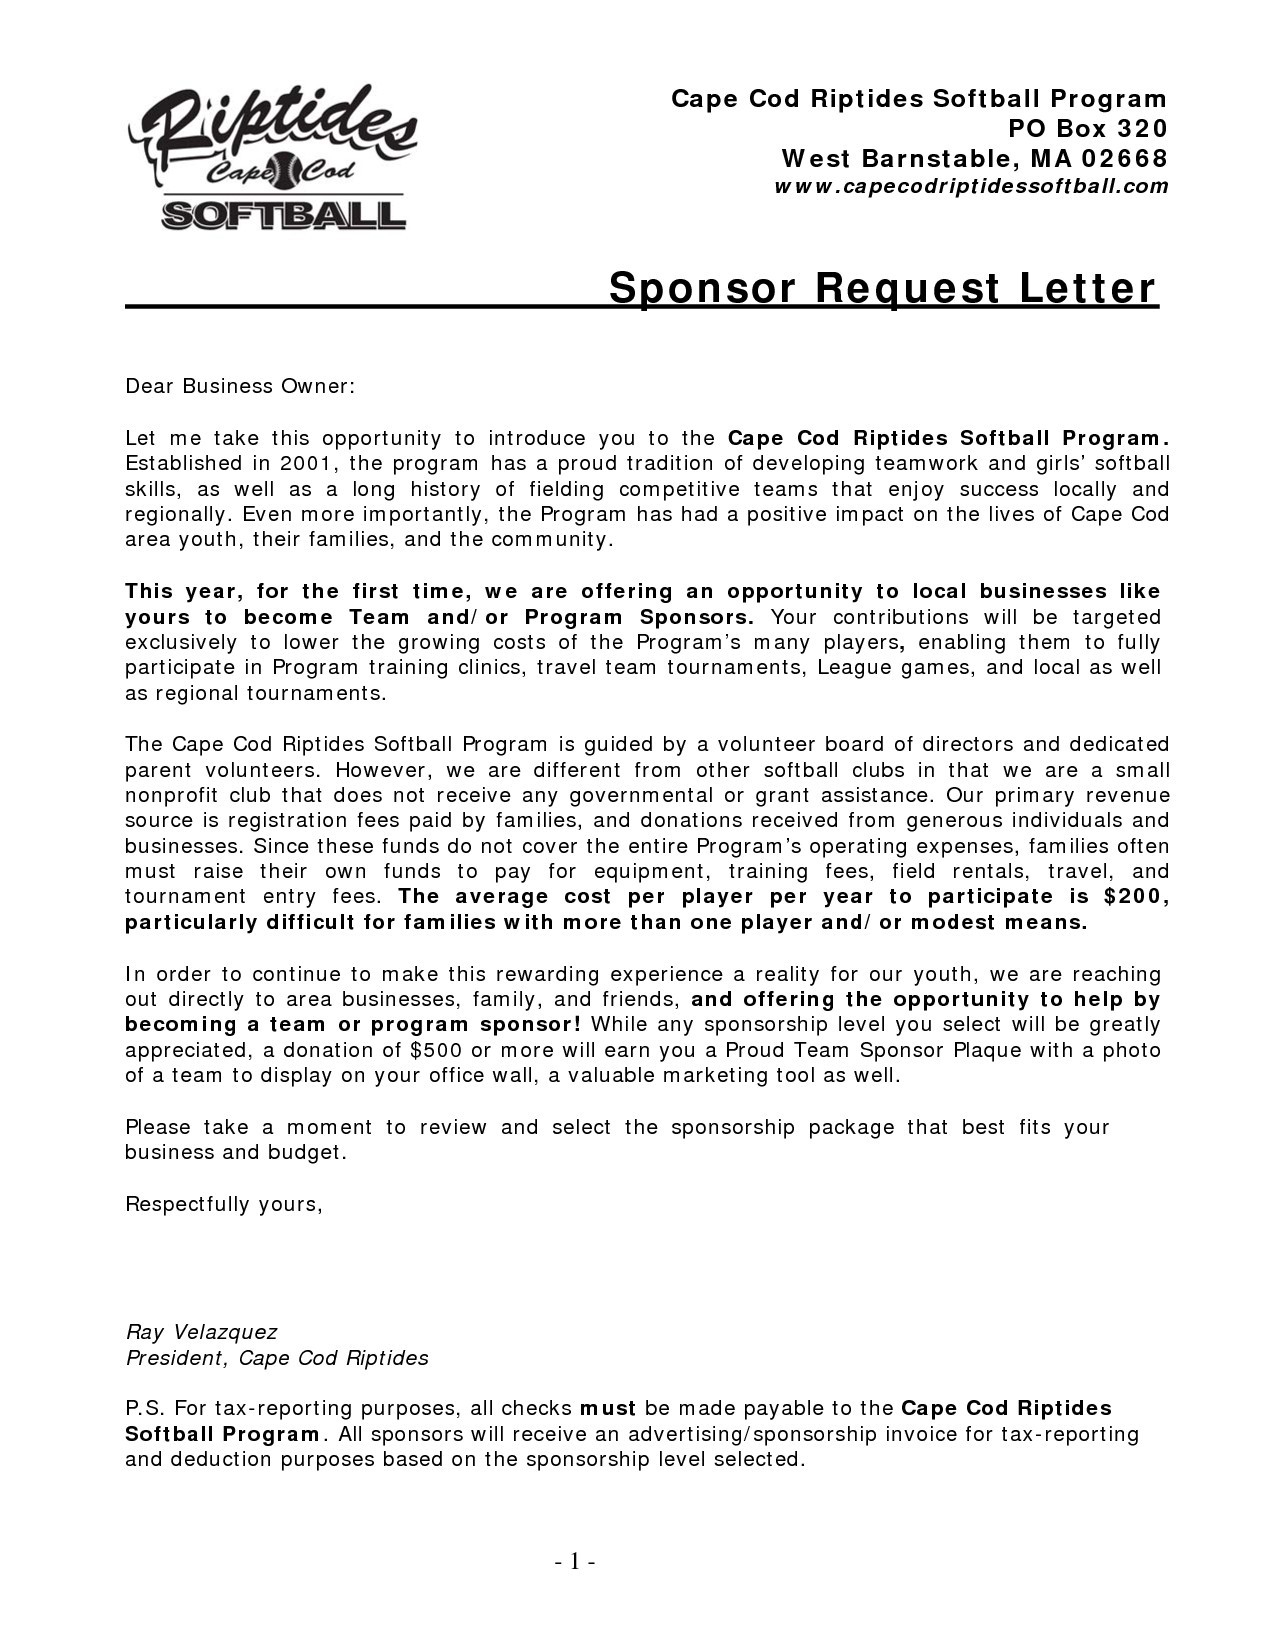 How to Write A Donation Request Letter Template - Sponsorship Request Letter Pdf Save Sample Registration Letter